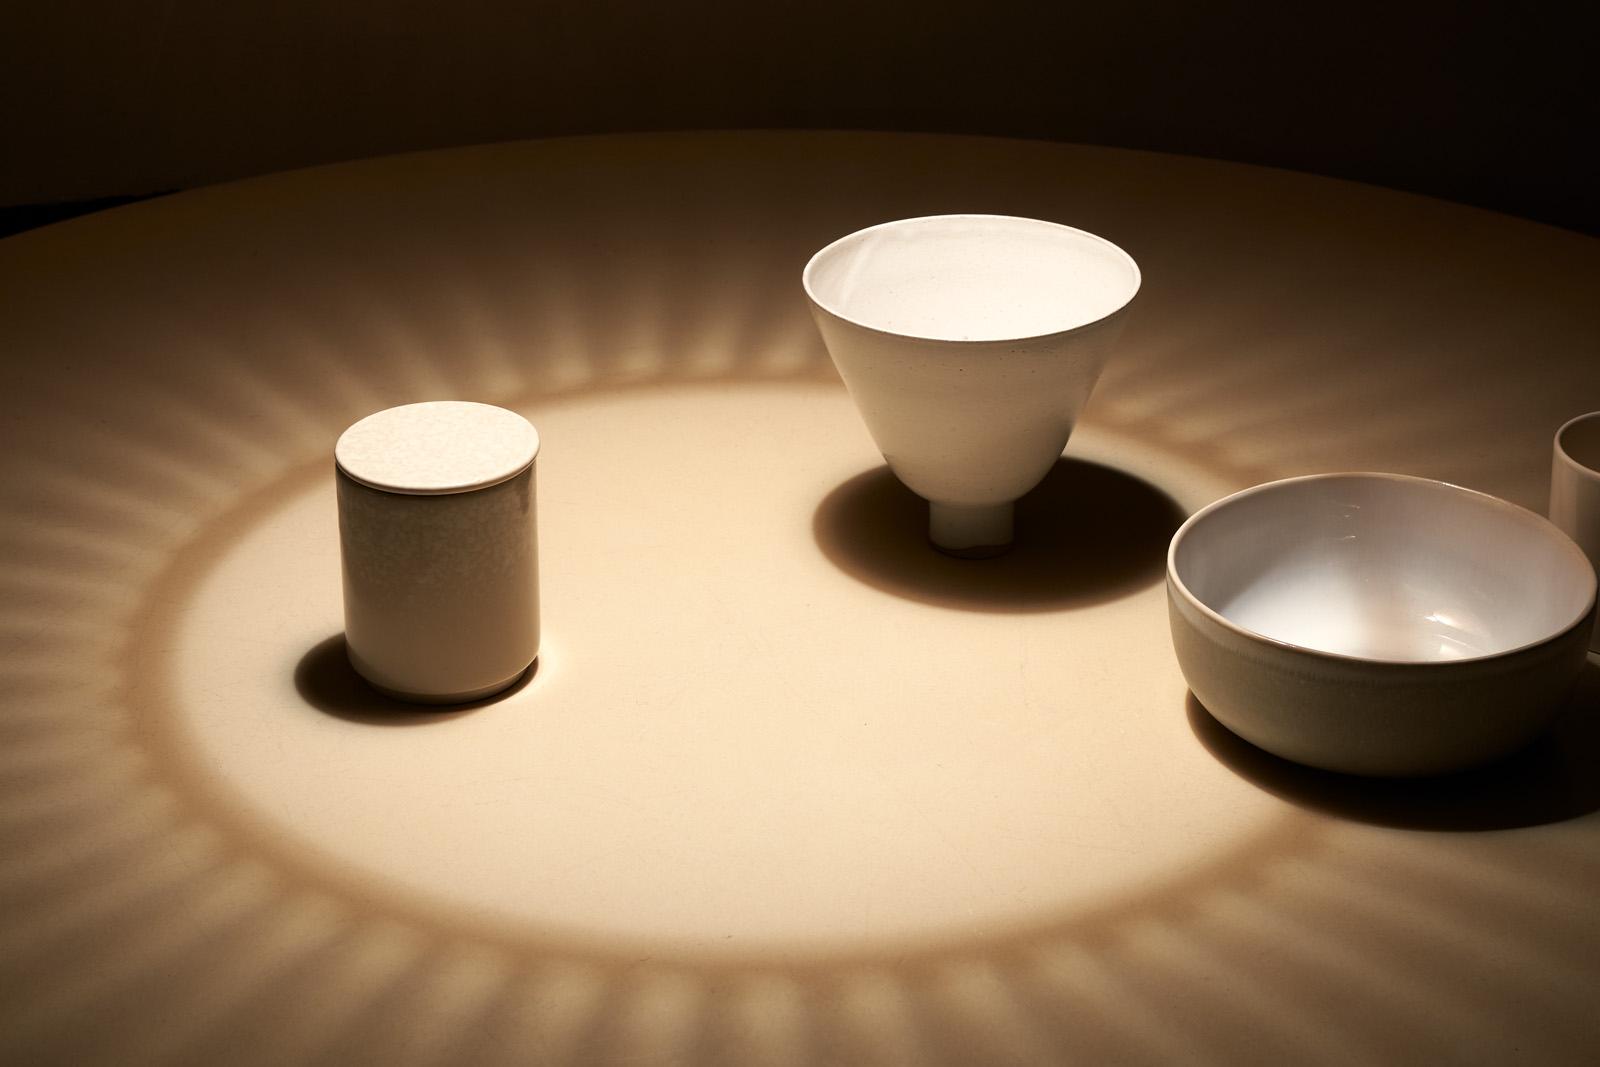 There are beige bowls on the table and a shadow surrounds them.